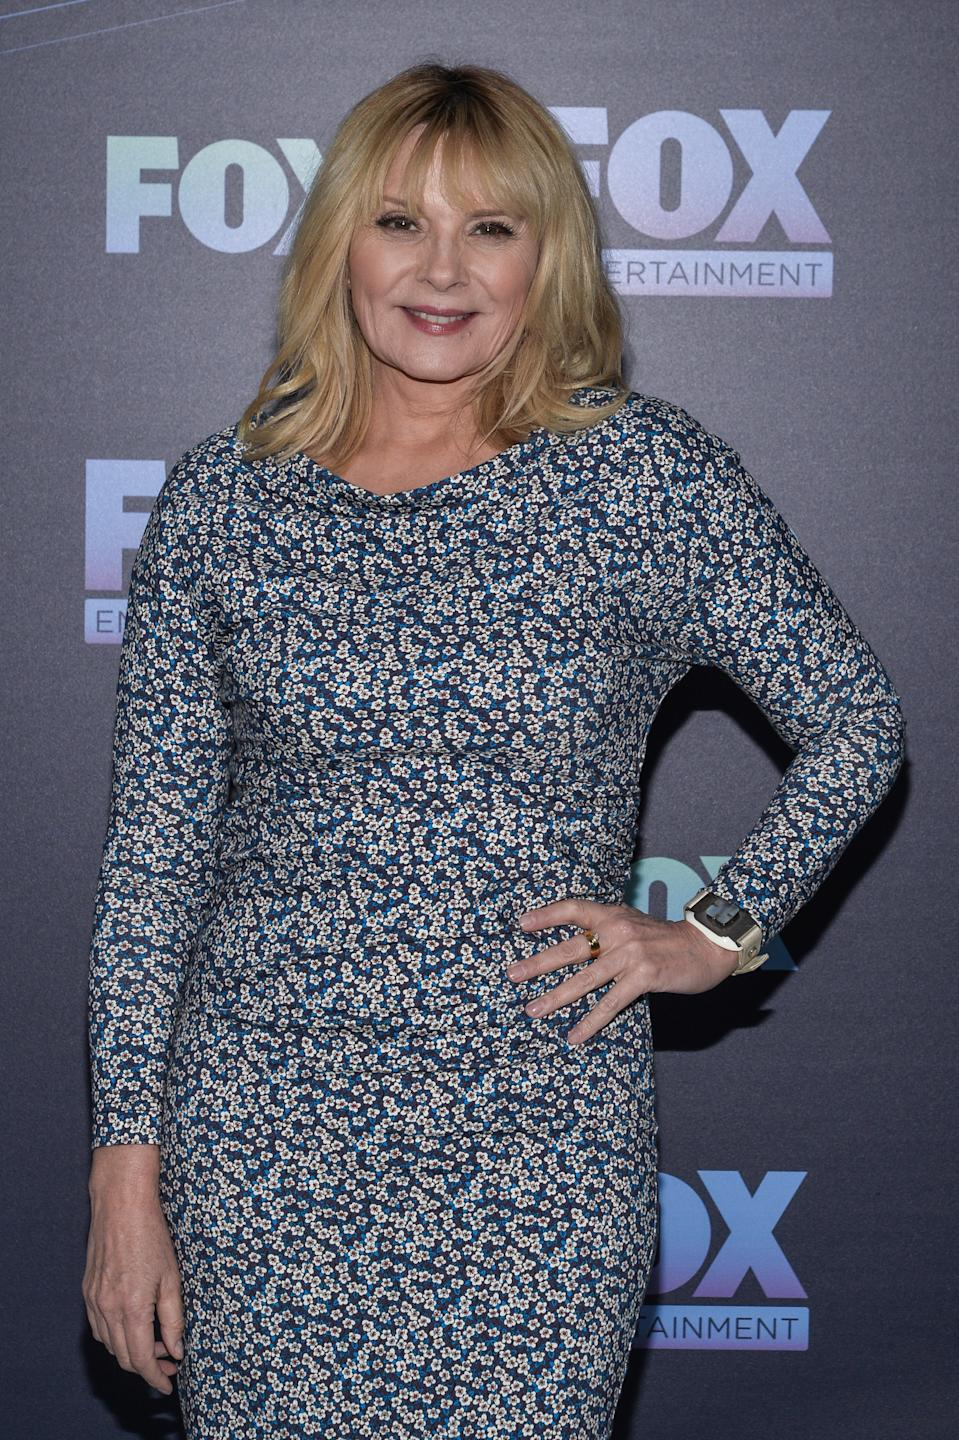 NEW YORK - MAY 13: Kim Cattrall attends the Fox 2019 Upfront Red Carpet arrivals at the Wollman Rink in Central Park on May 13, 2019 in New York City. (Photo by Anthony Behar/Fox/PictureGroup/Sipa USA)